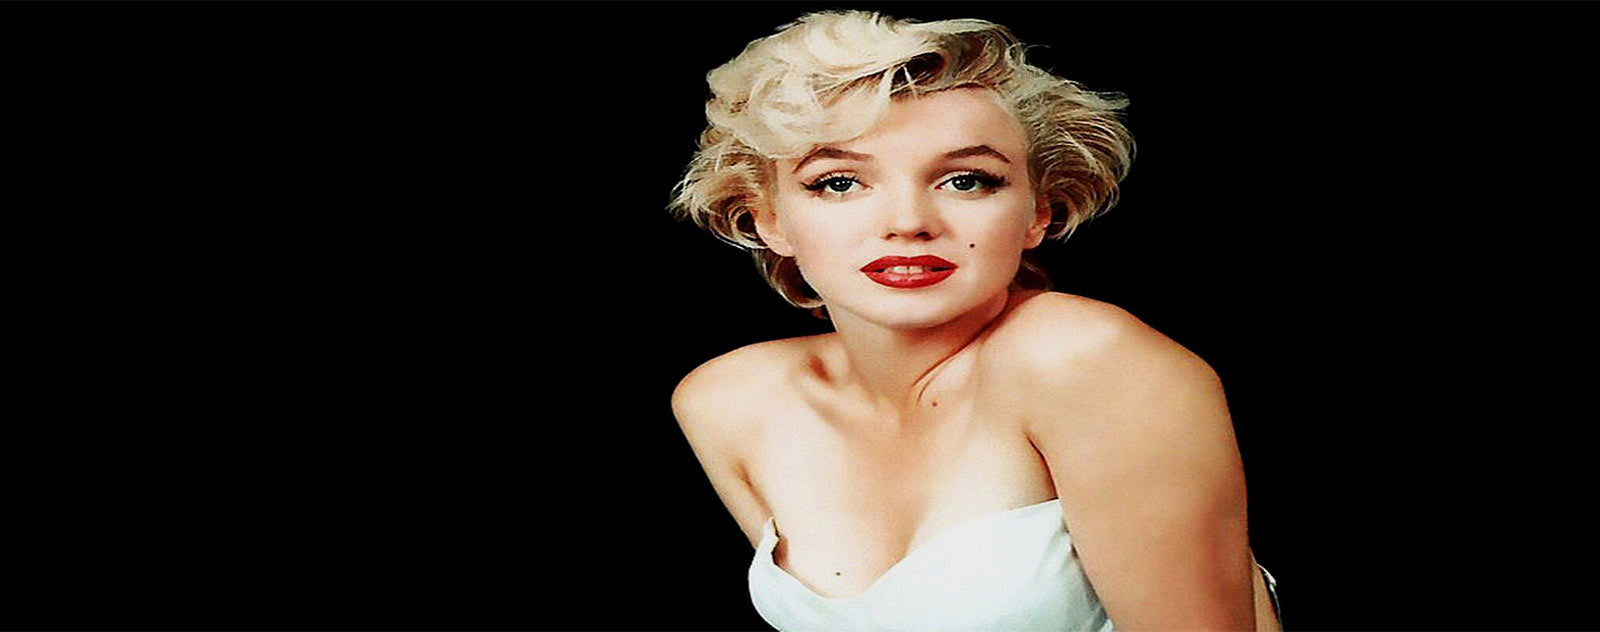 marilyn monroe actrice cinema